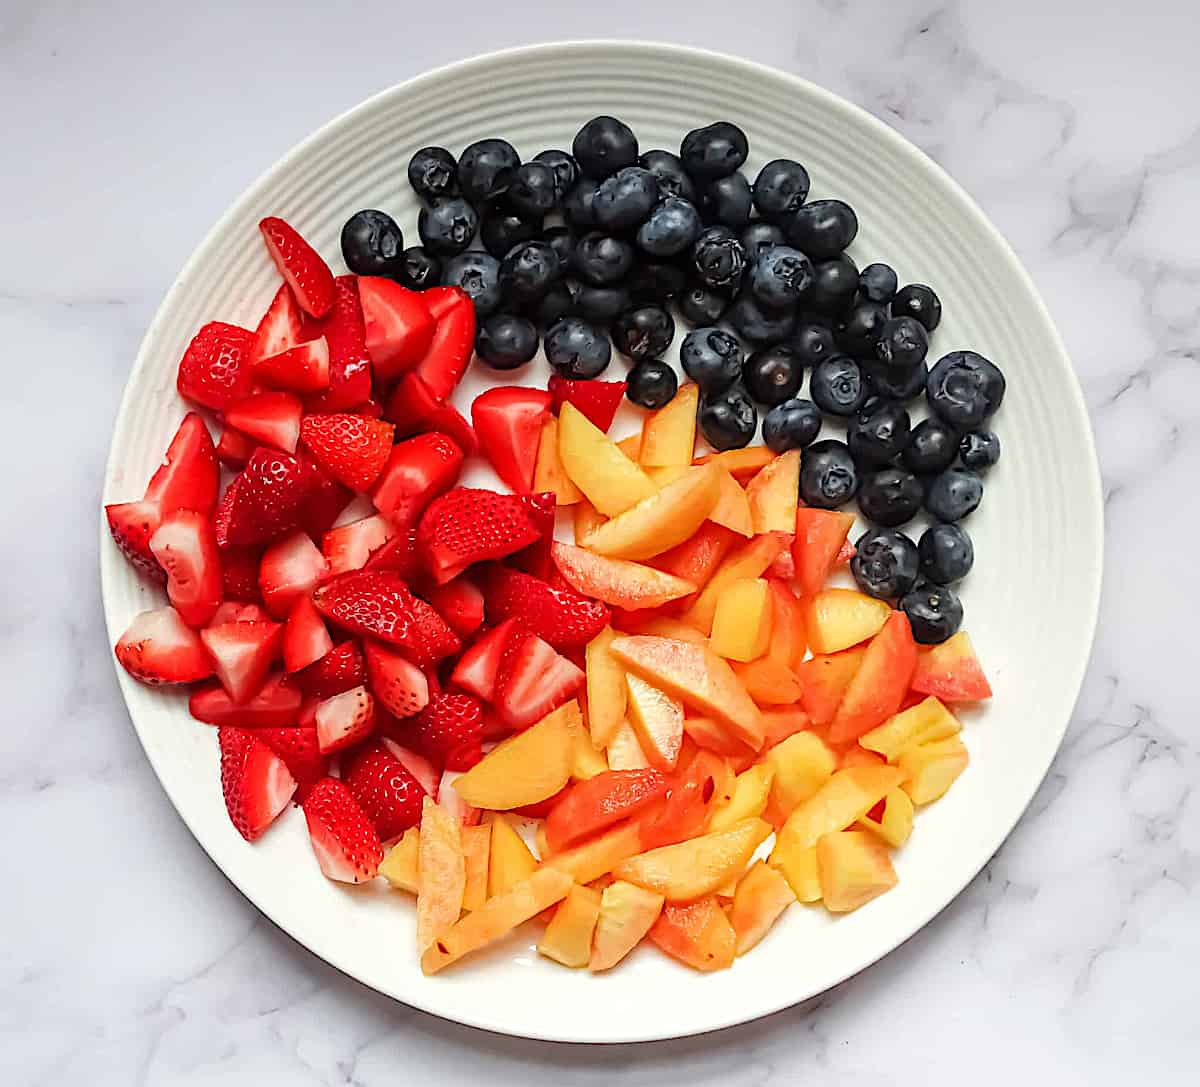 chopped fruit on a white plate